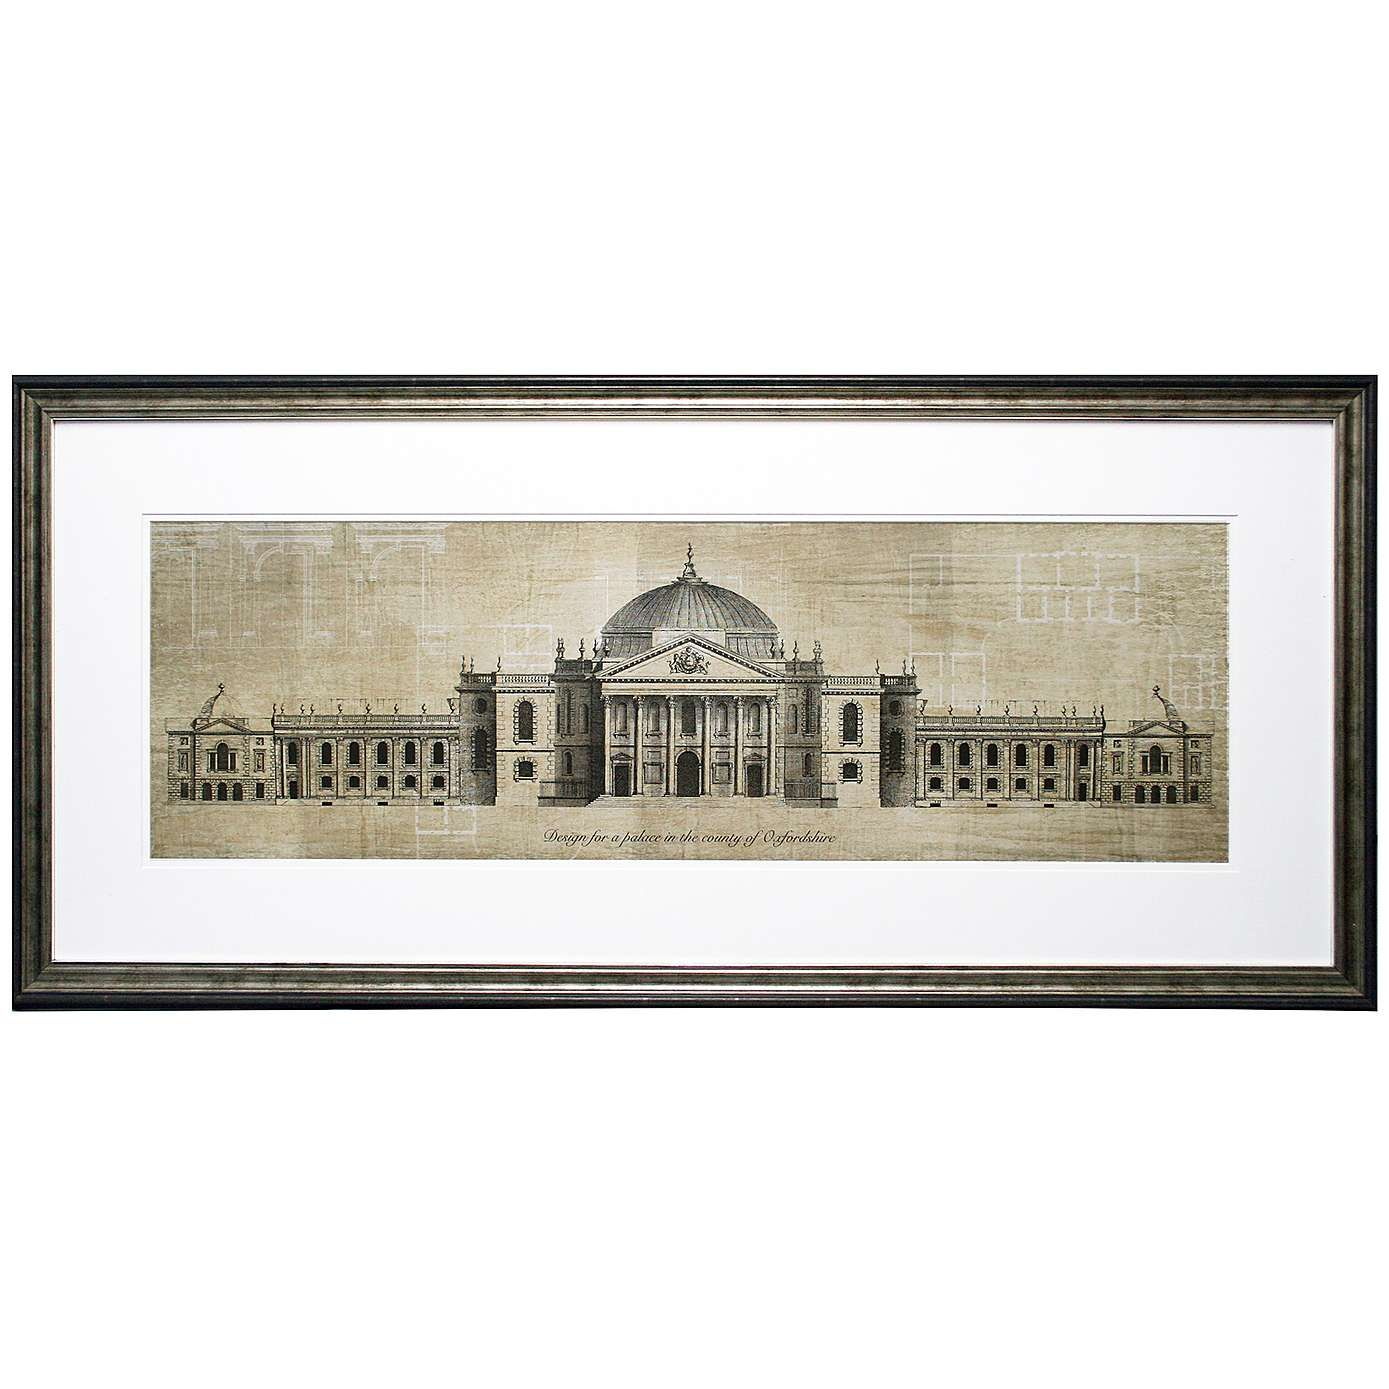 Architectural Prints Framed Dorma Architectural Framed Print Dunelm Products To